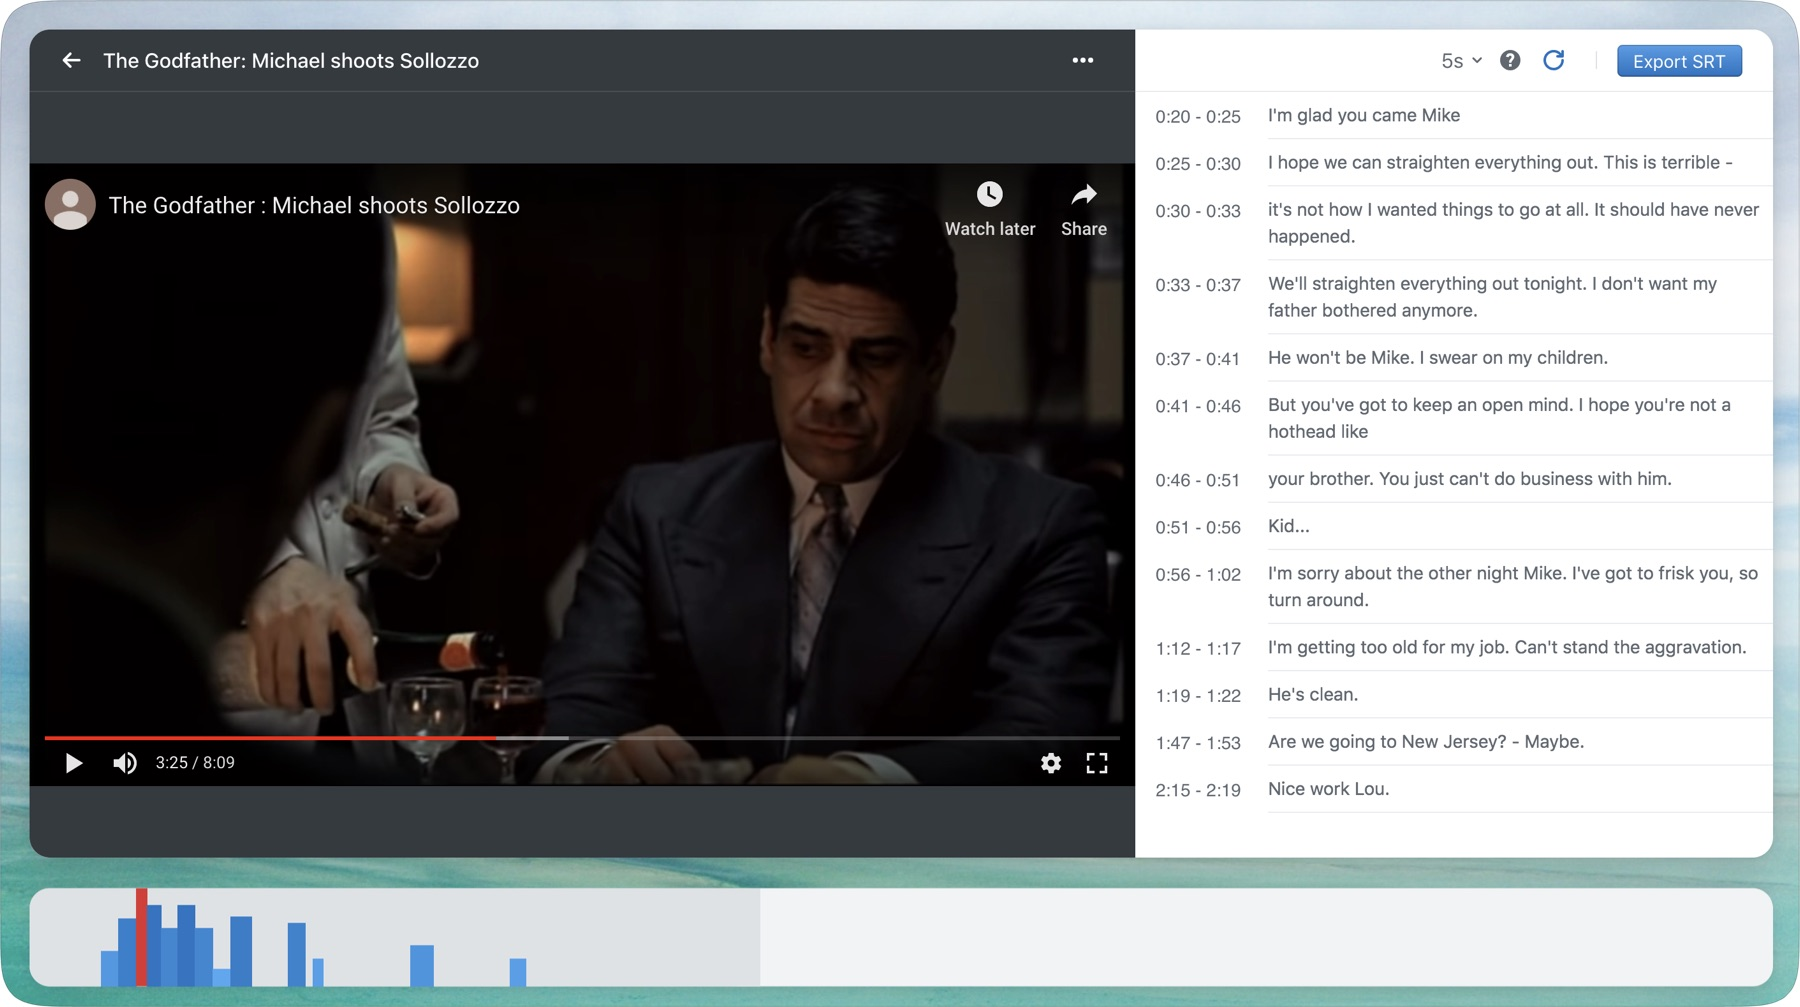 Captioner screenshot showing a user adding subtitles to the Godfather movie.